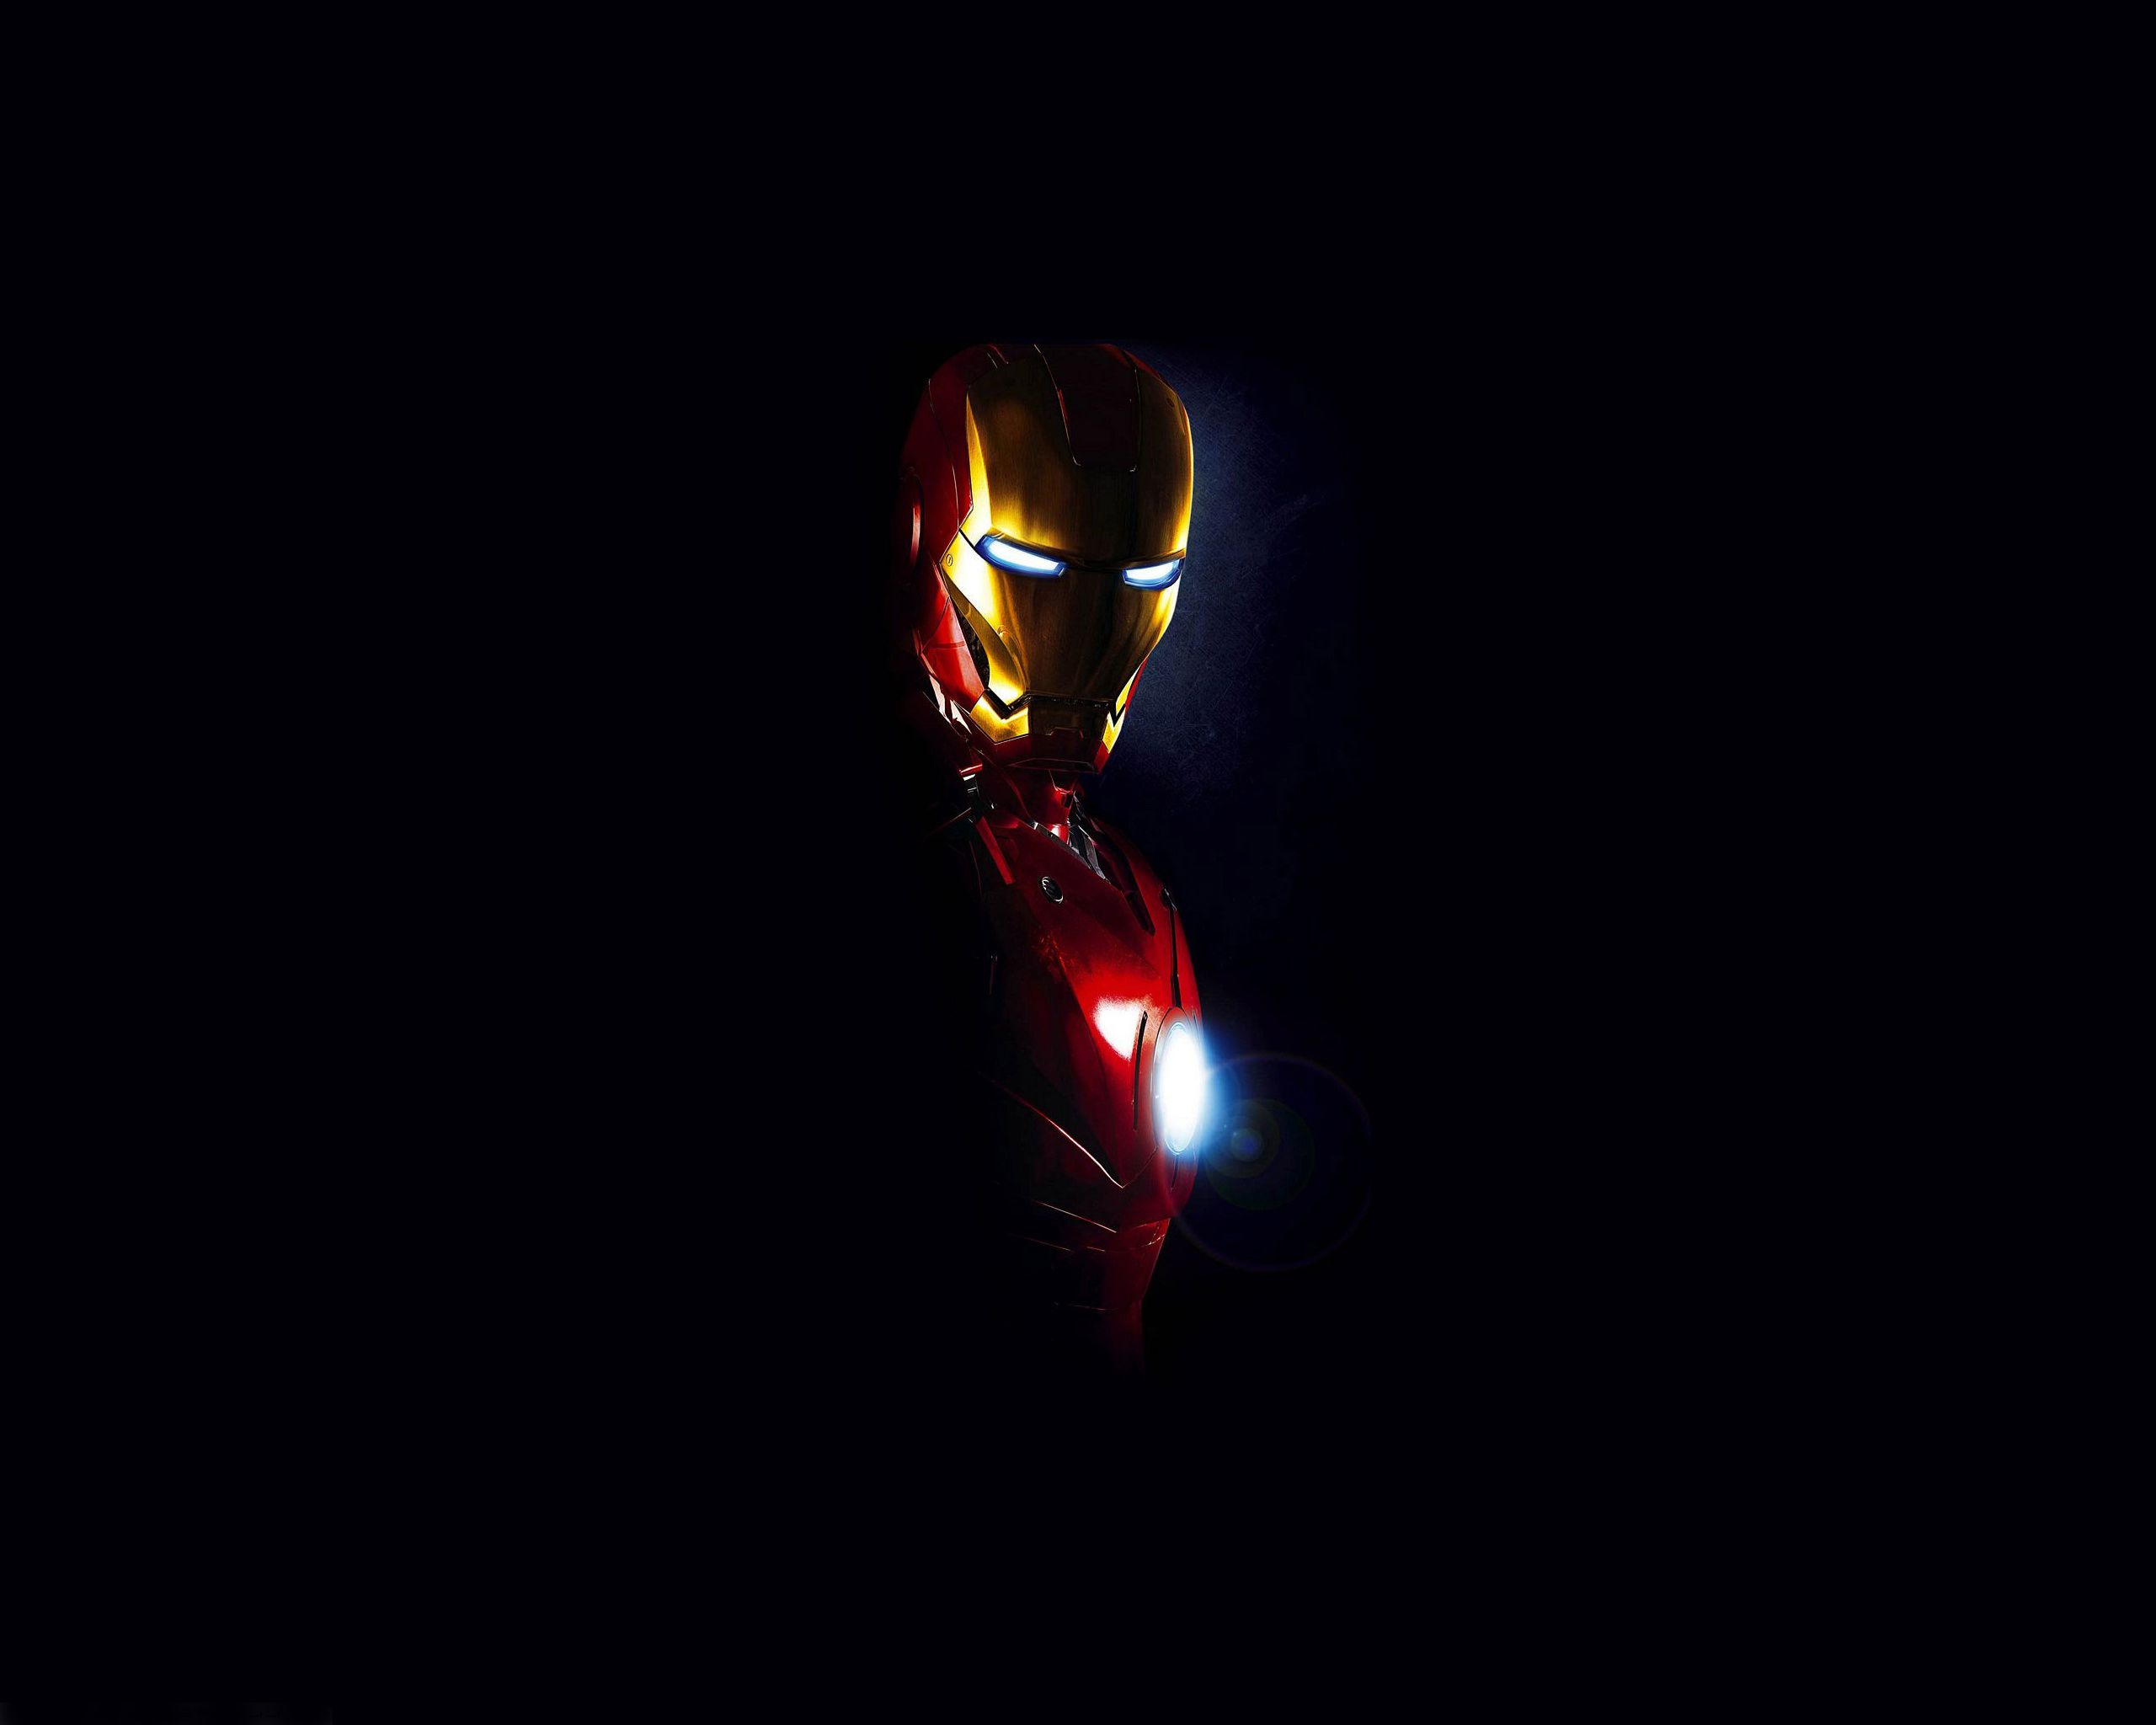 Cool Picture Of Iron Man Photo With Dark Background Iron Man Wallpaper Iron Man Hd Wallpaper Man Wallpaper